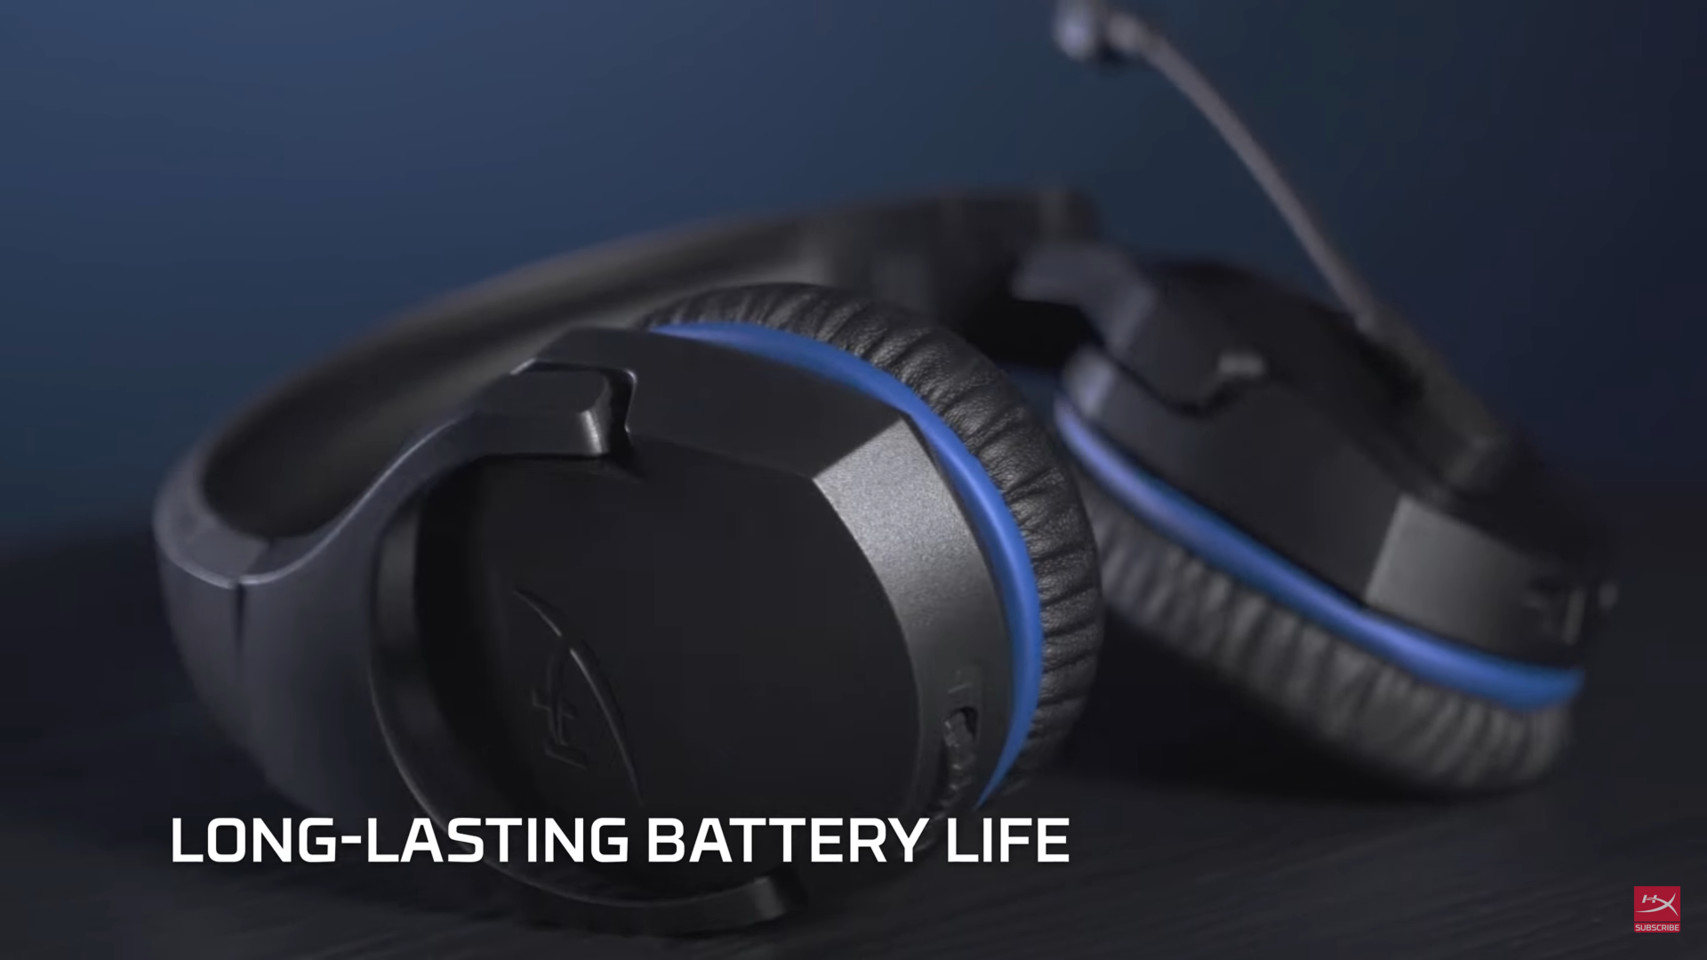 hyperx cloud wireless 3